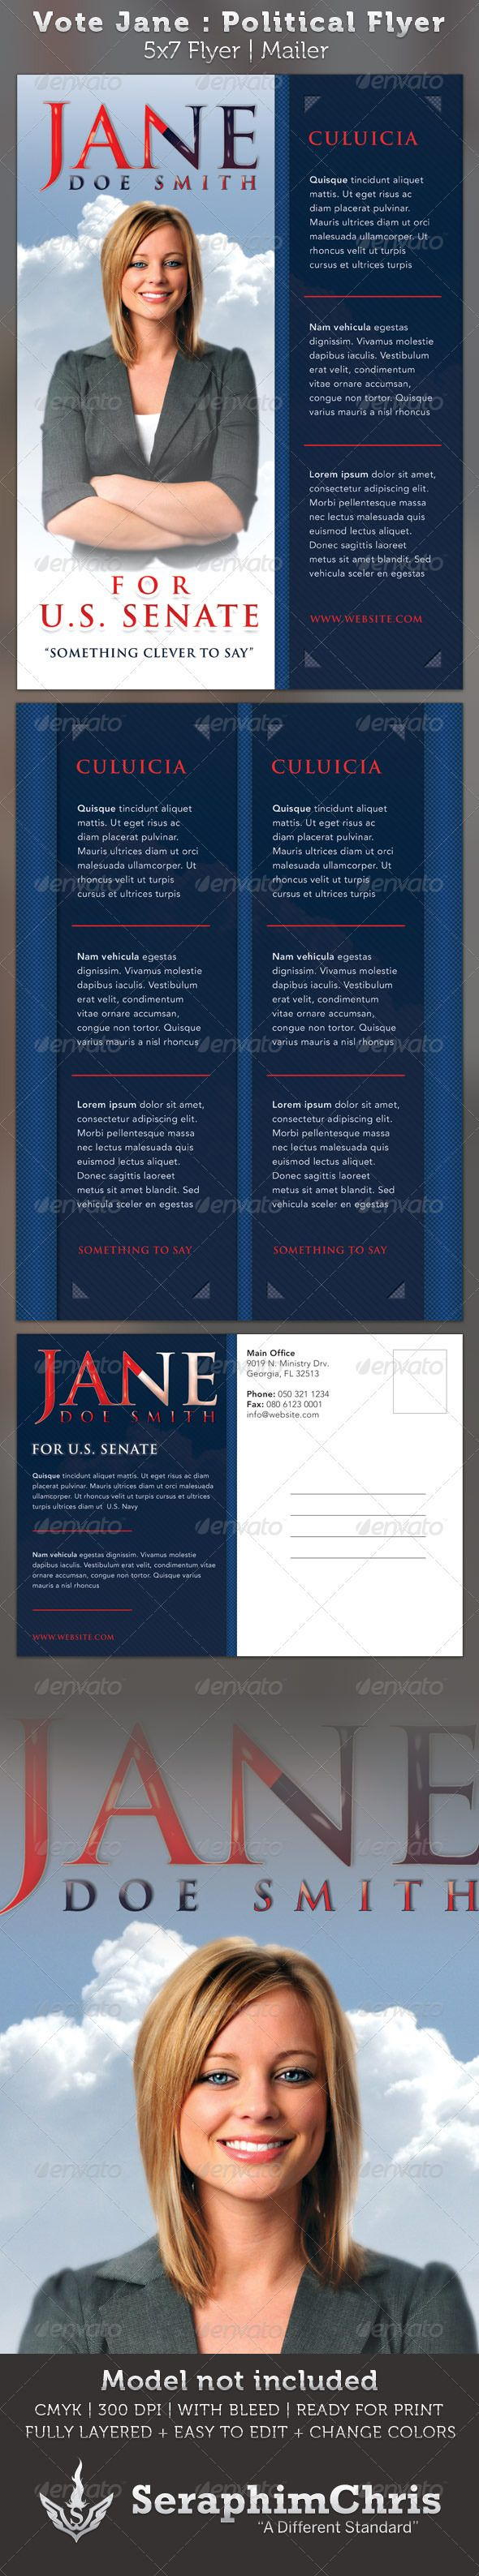 vote jane 5x7 political flyer mailer template